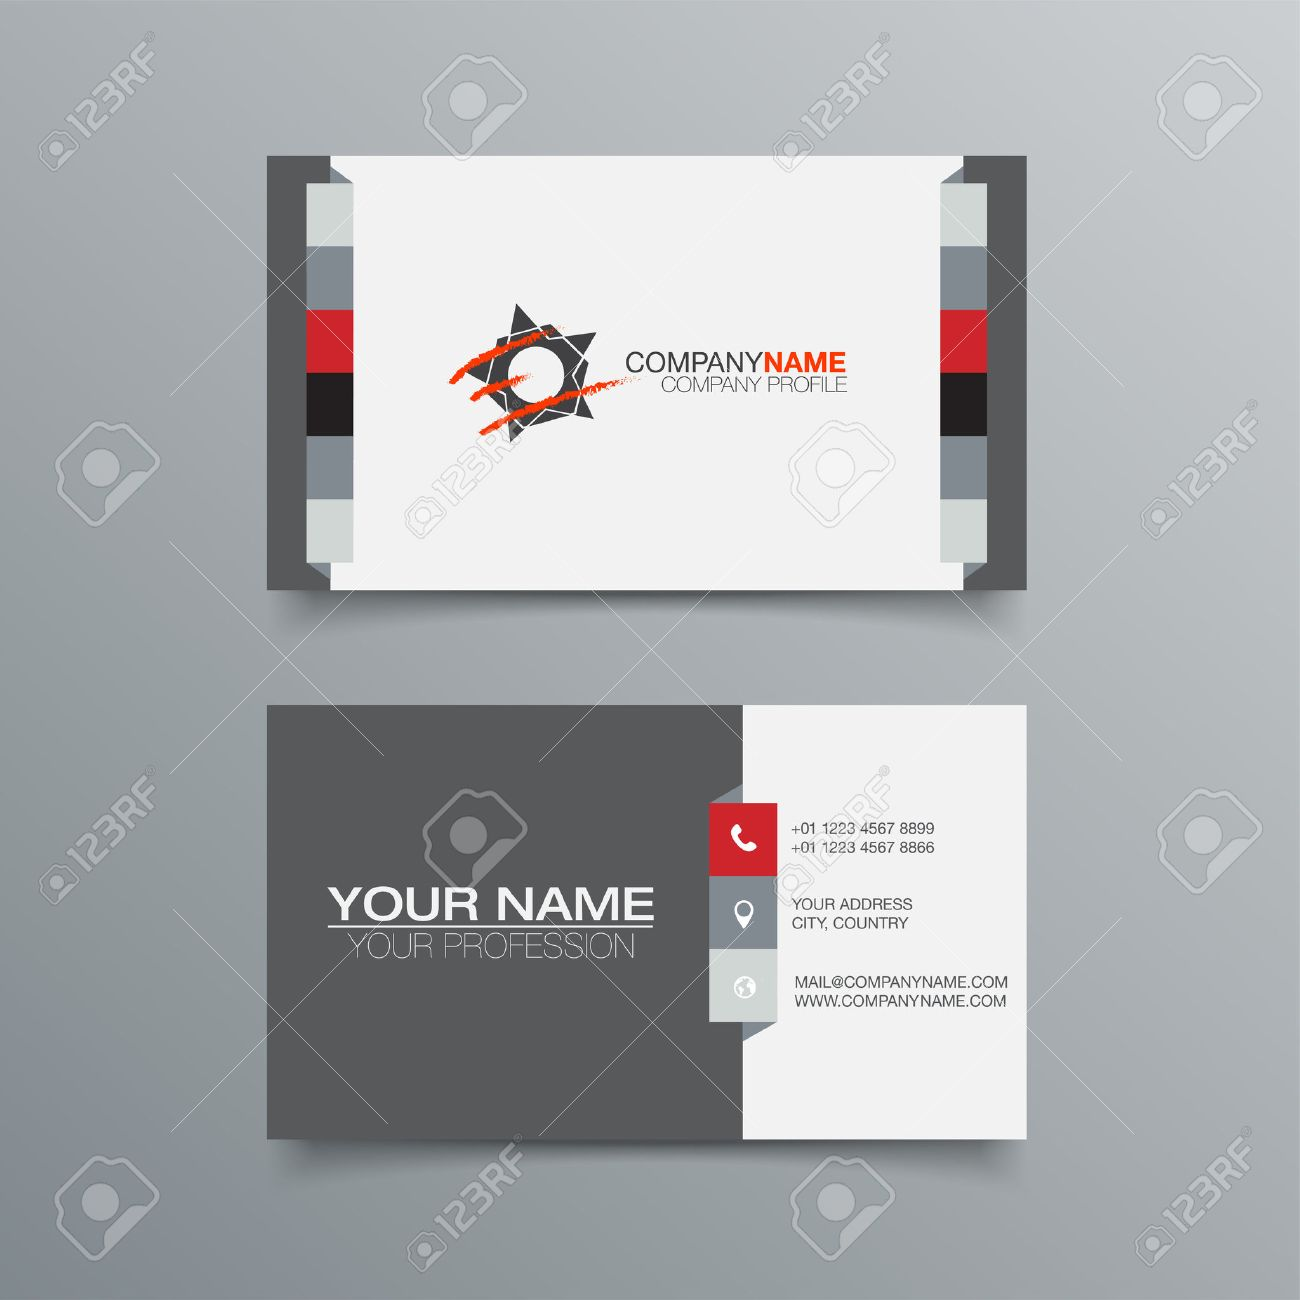 Business Card Background Design Template. Stock Vector Illustration Stock Vector - 43934307